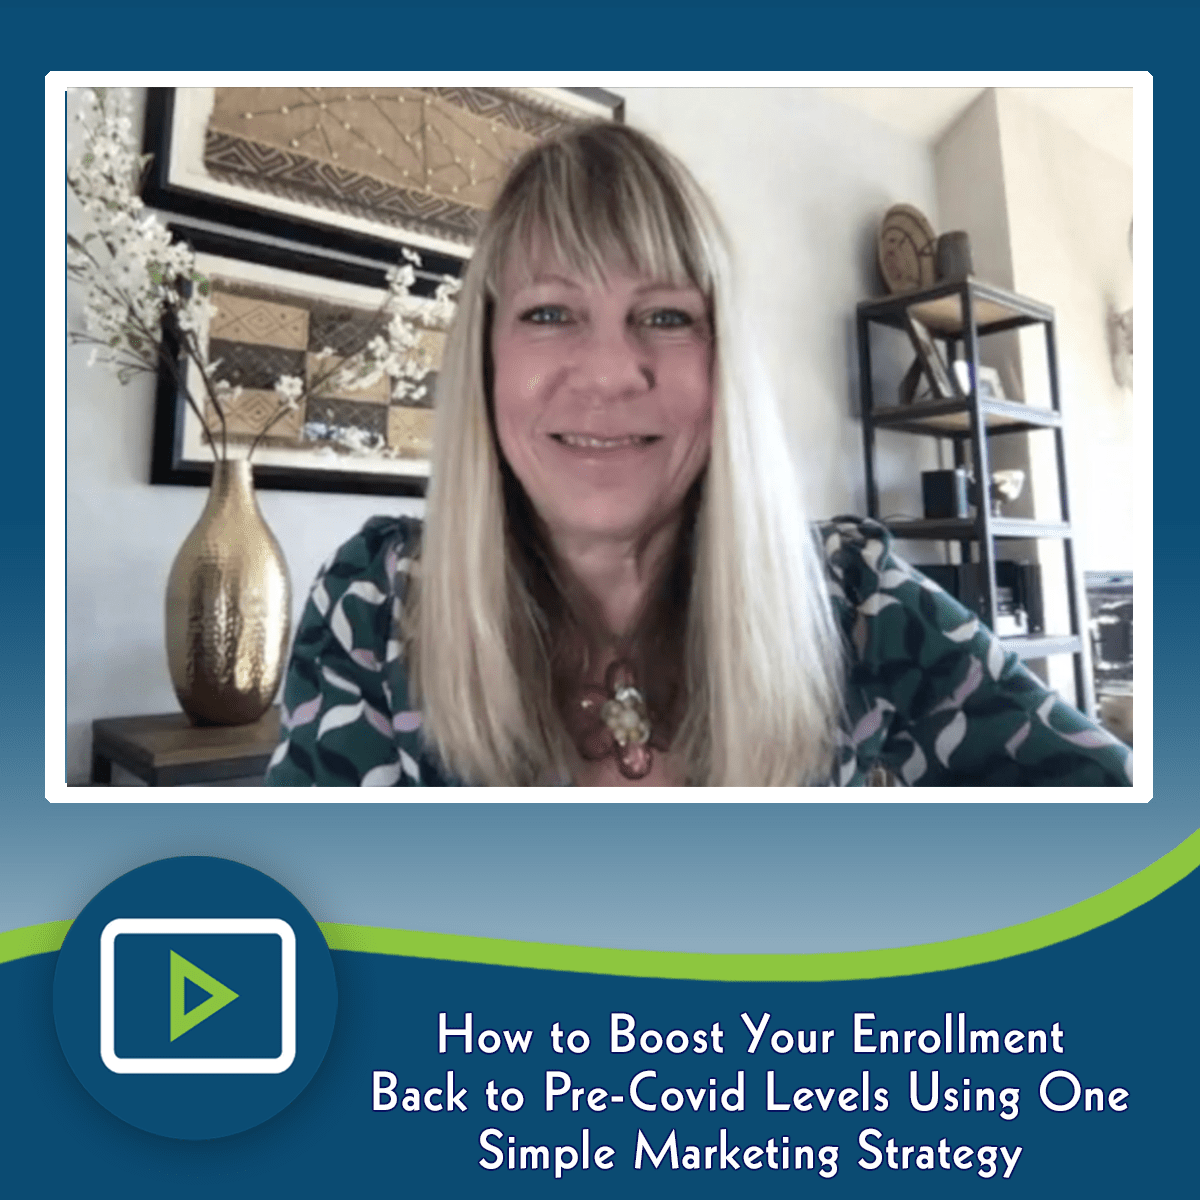 How to Boost Your Enrollment Back to Pre-Covid Levels Using One Simple Marketing Strategy